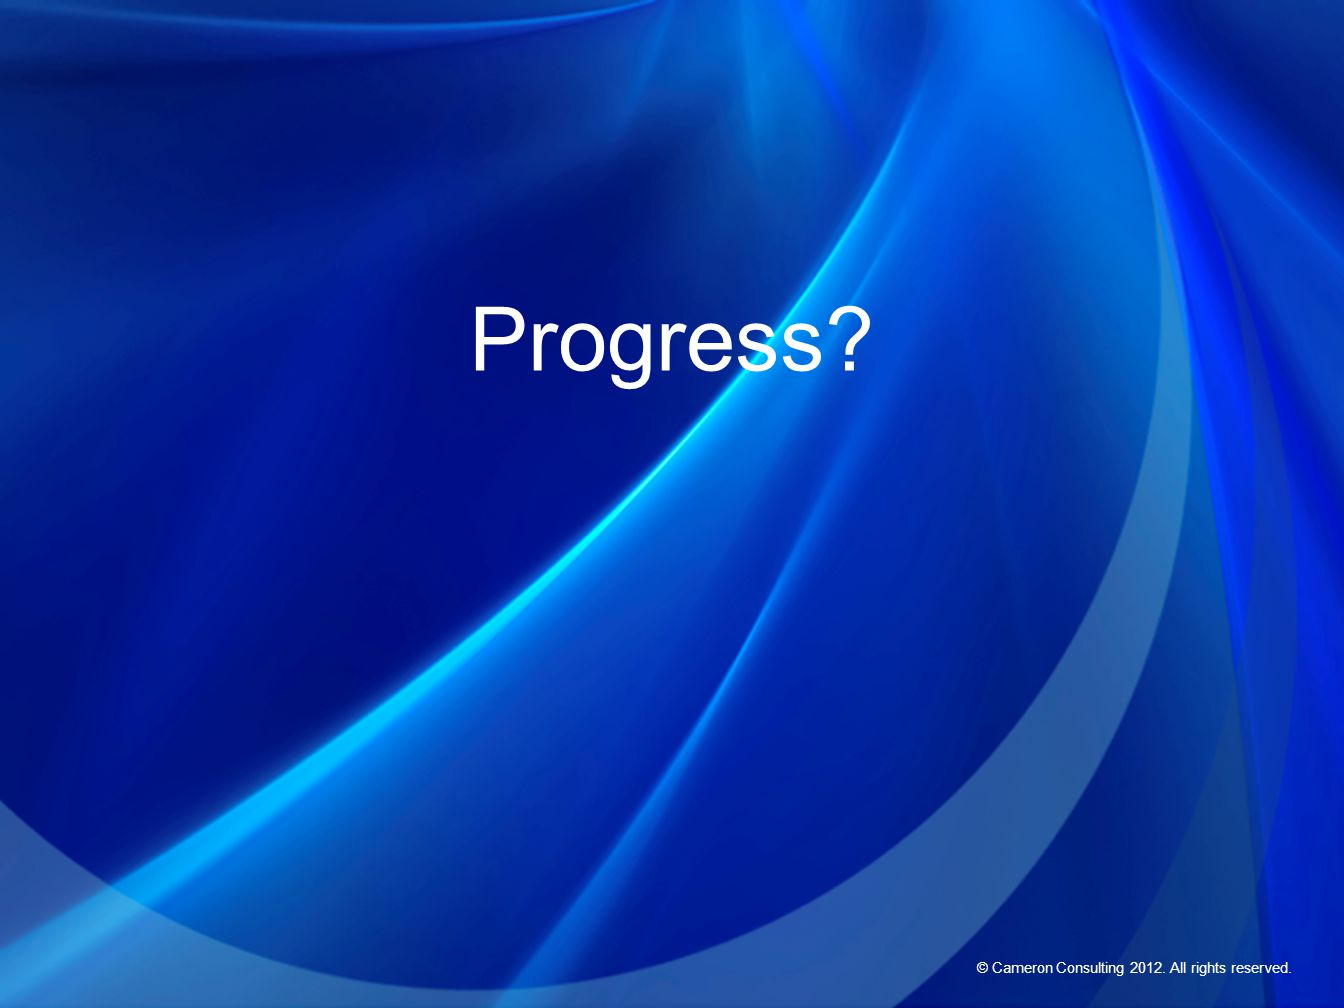 © Cameron Consulting 2012. All rights reserved. Progress?